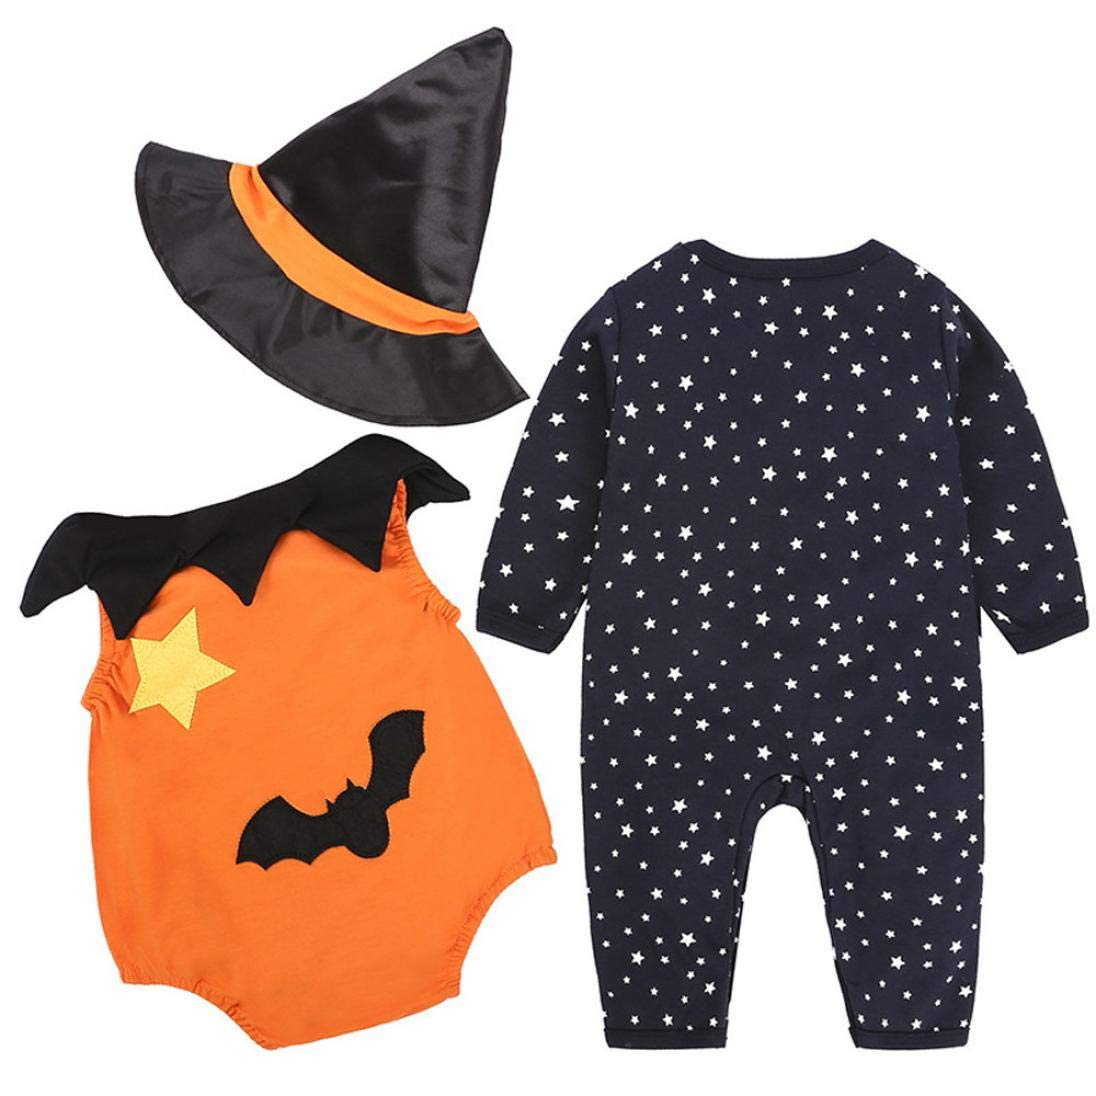 Baby Halloween Costume Sets,Jchen(TM) Infant Baby Boy Girl Pumpkin Romper Vest Hat Halloween Outfits Costume 3Pcs Sets for 0-24 Months (Age: 12-18 Months)